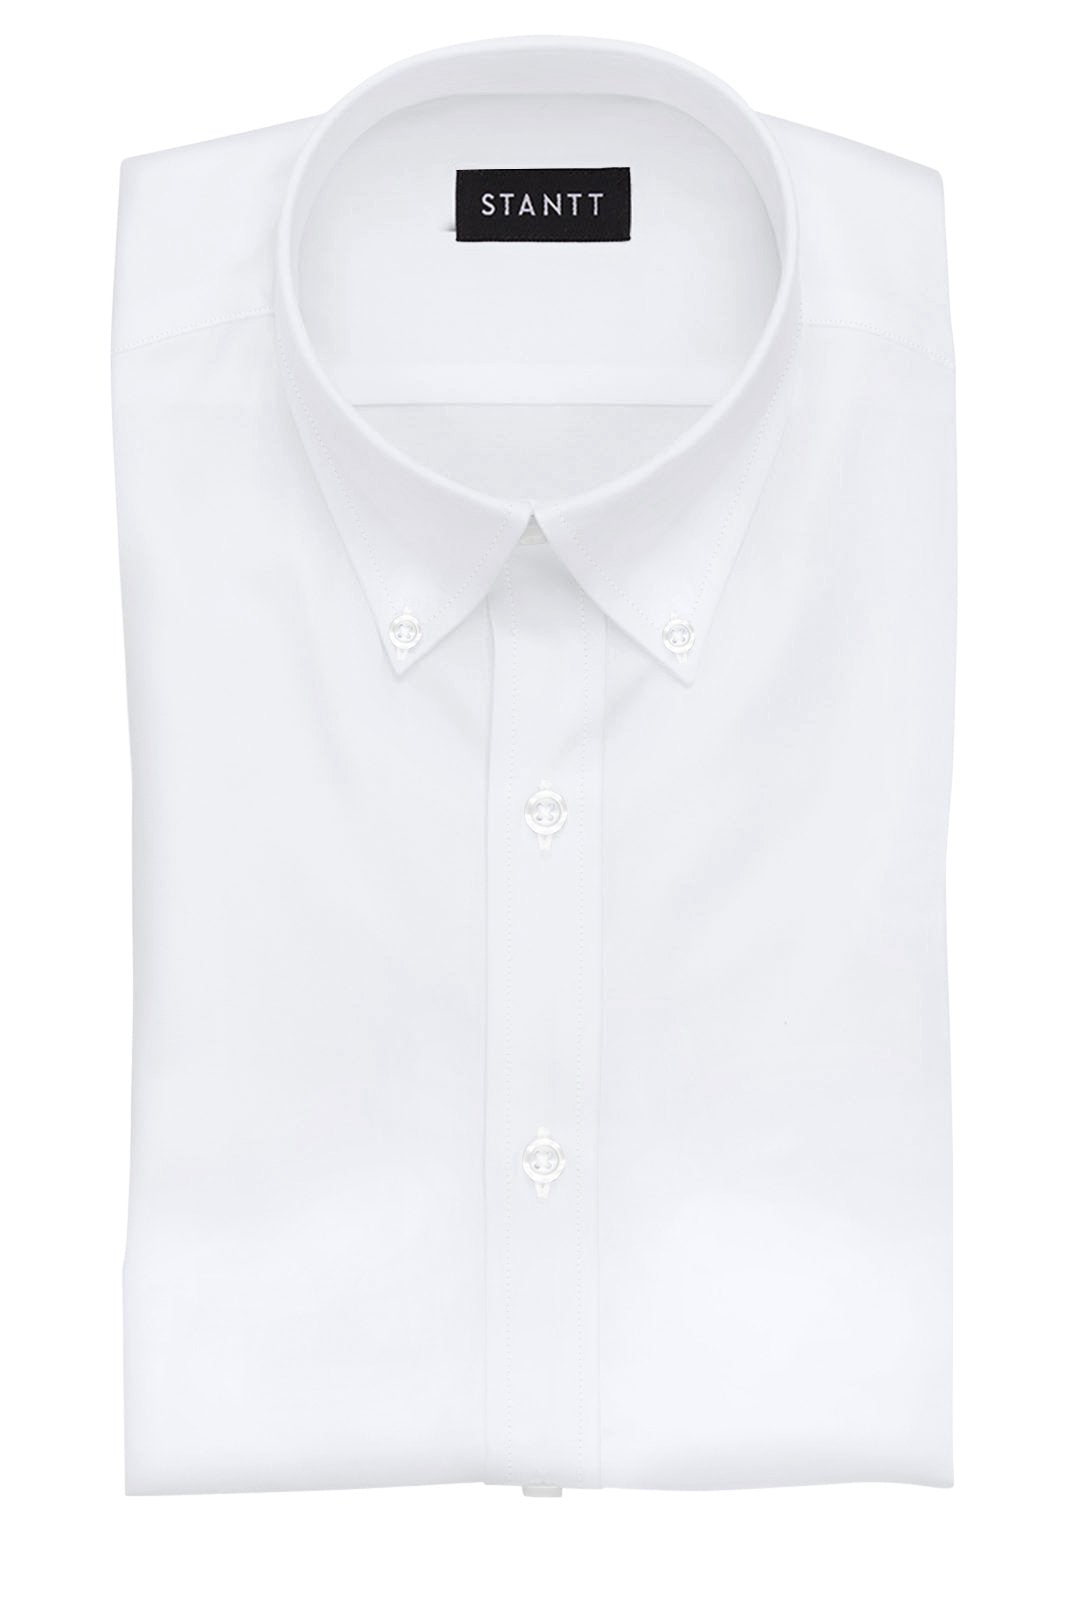 Fine White Poplin: Button-Down Collar, Barrel Cuff